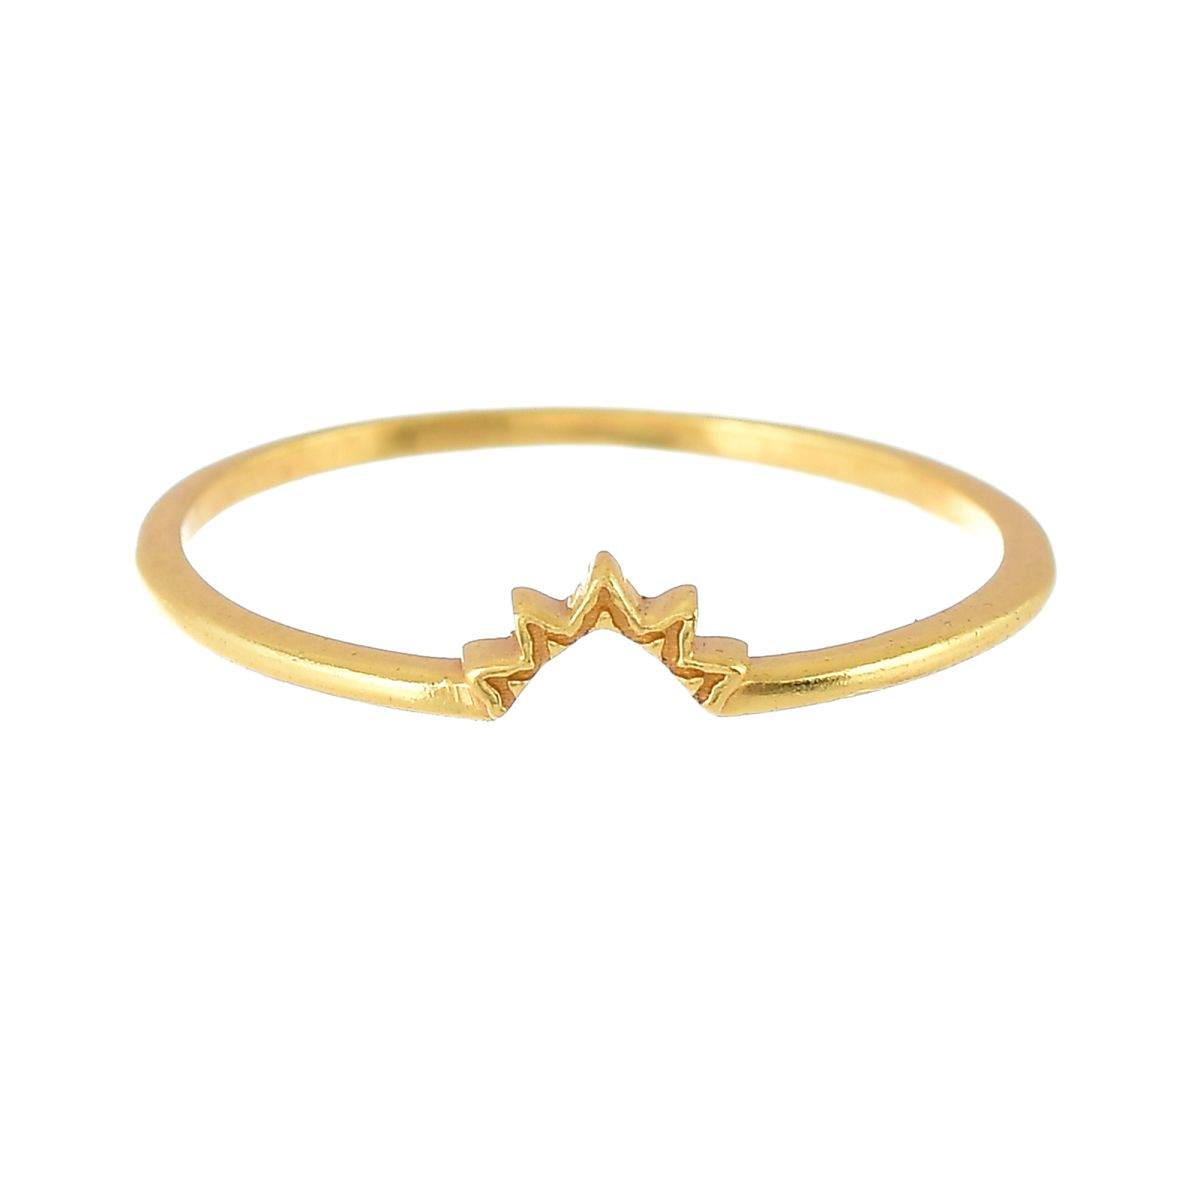 h ring size 52 triangle nefrite set of 2 gold plated